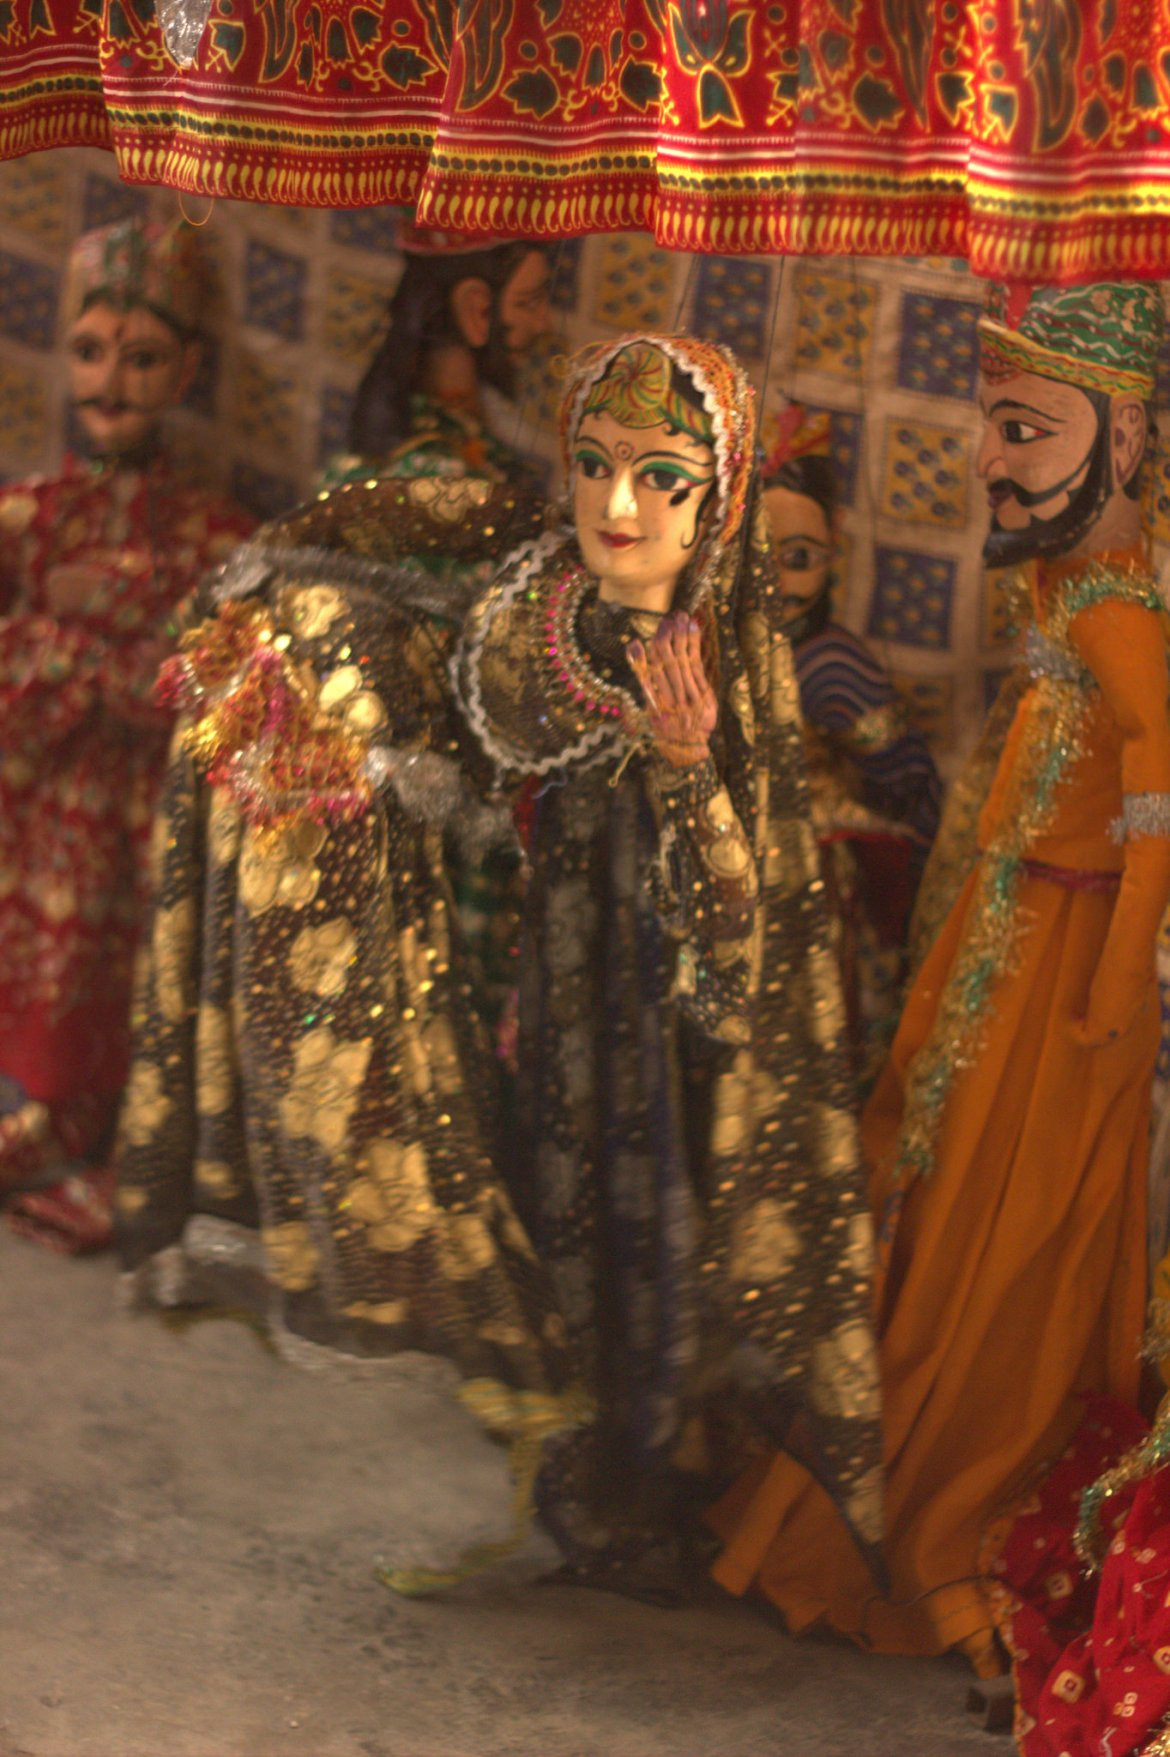 A Rajasthani puppet show in progress at Kathputli Colony